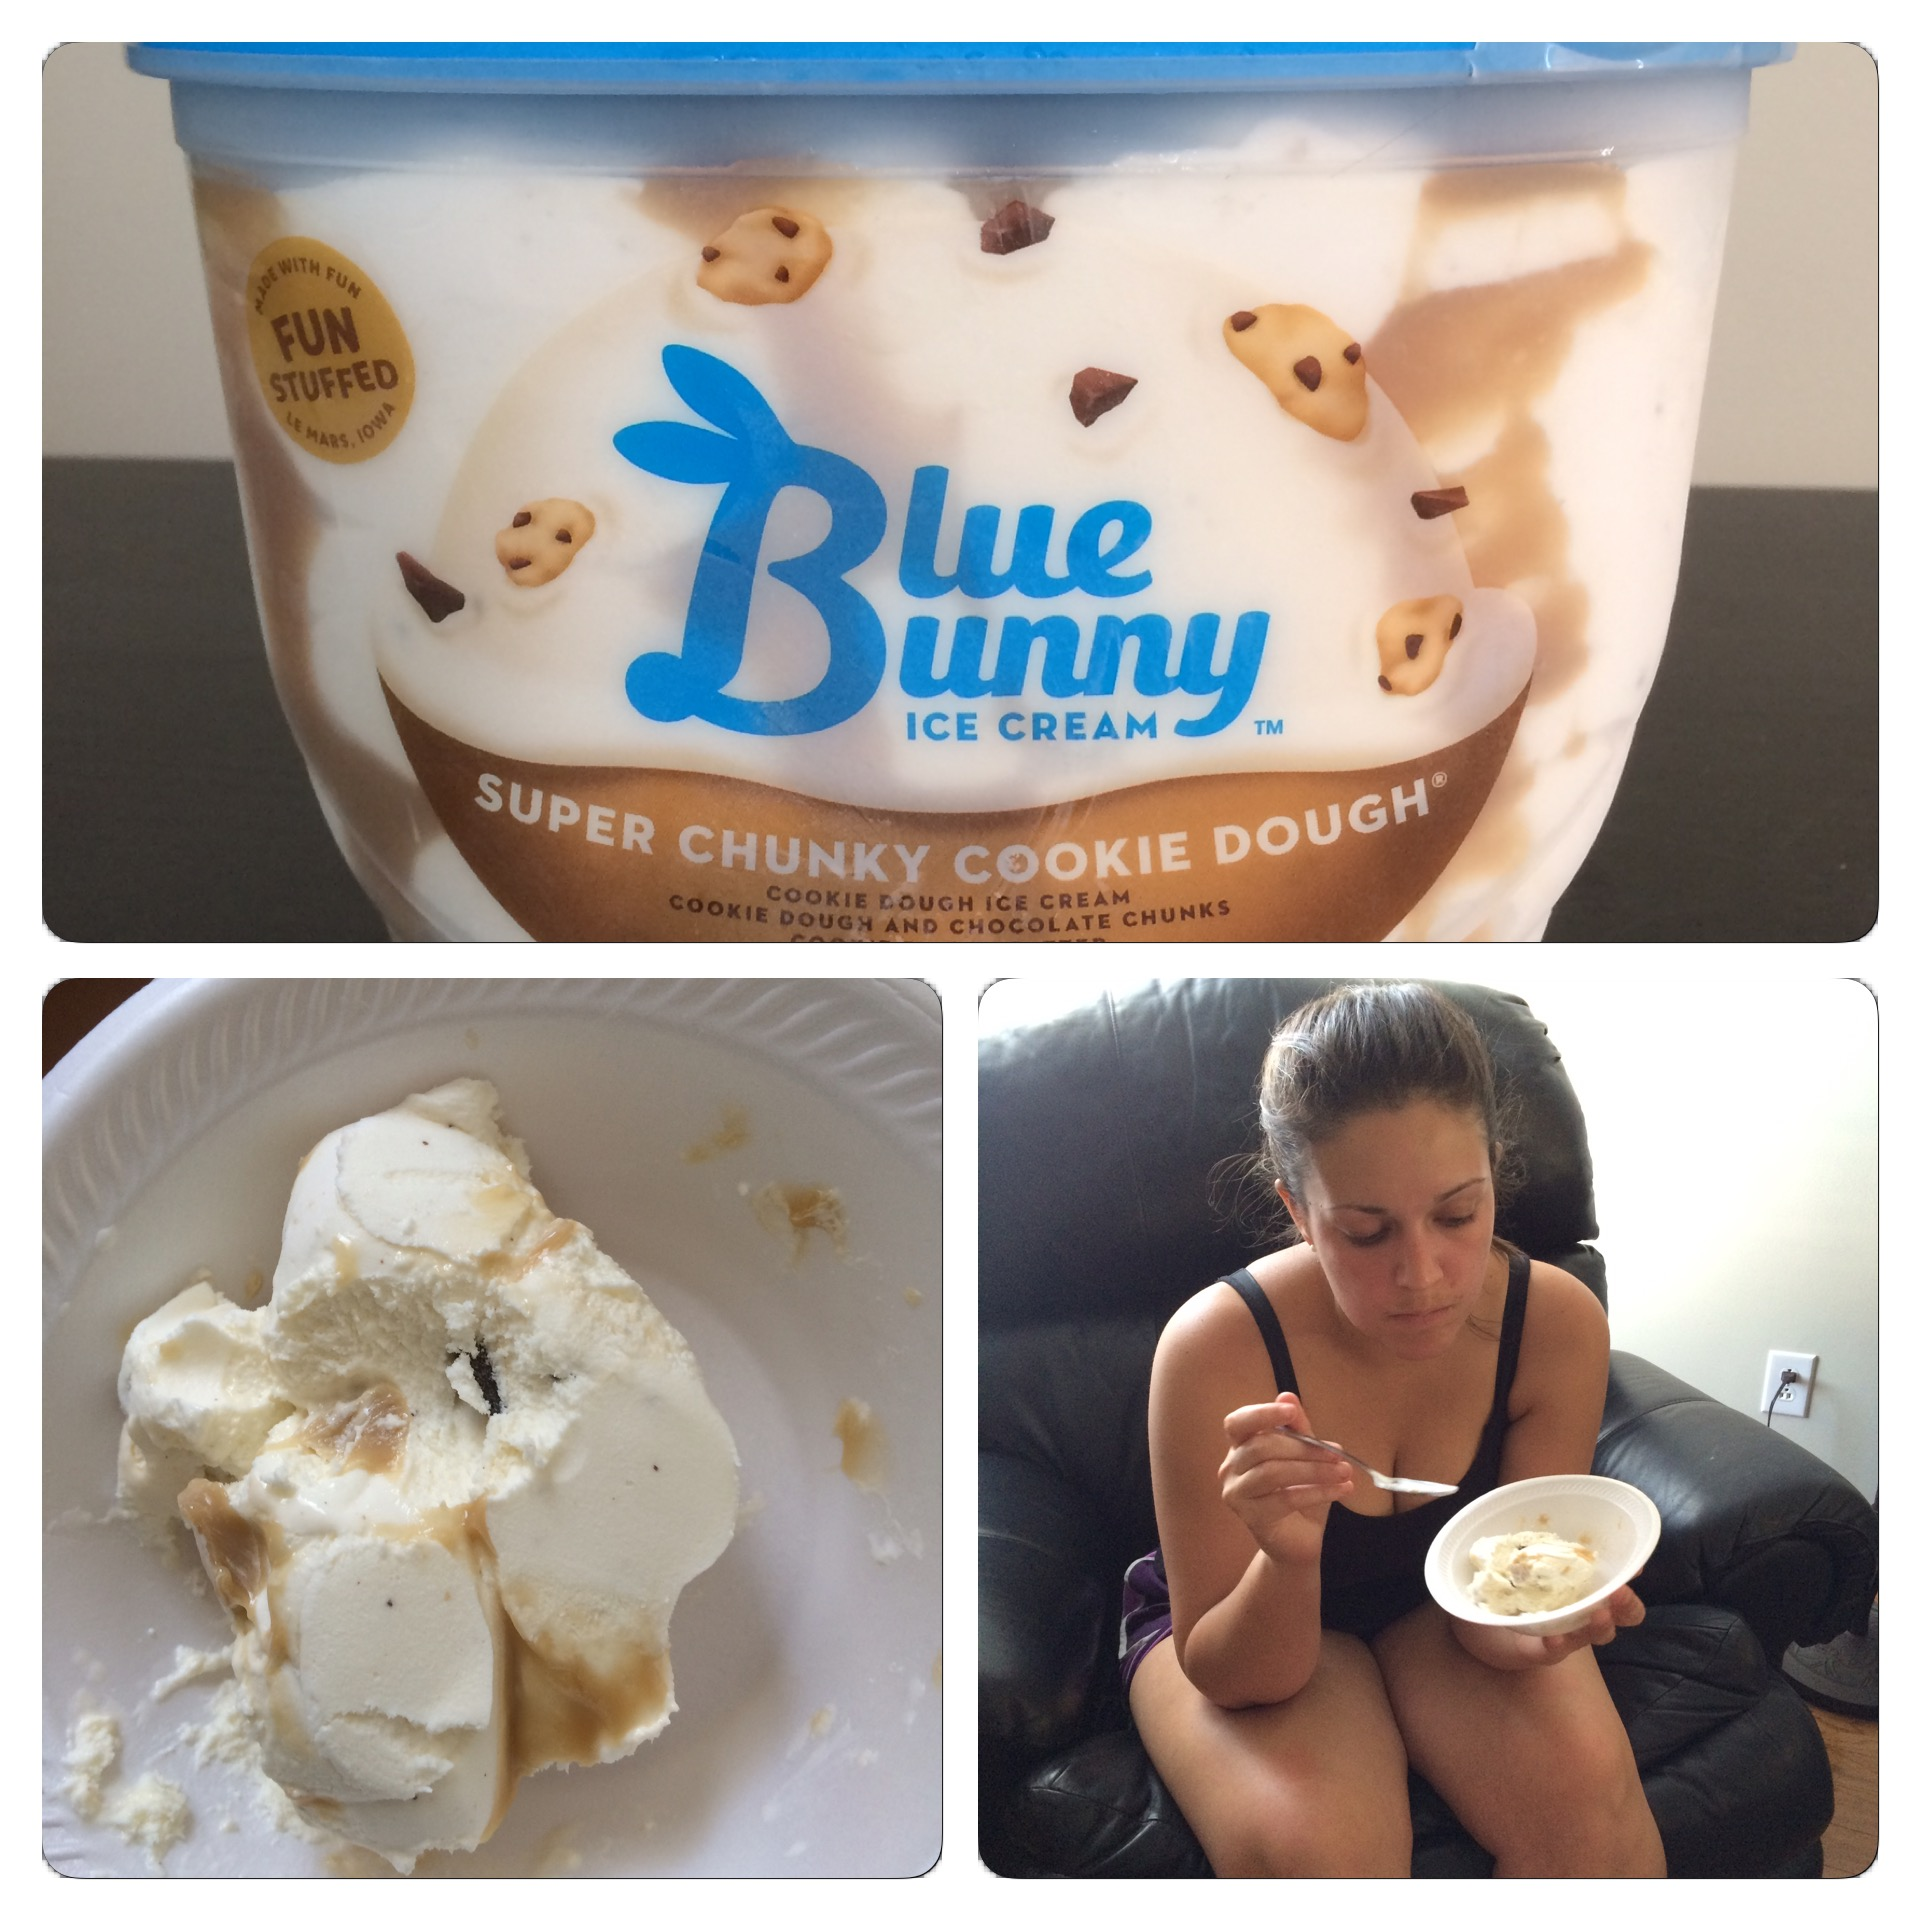 In the middle of the pack was ice cream powerhouse Blue Bunny.